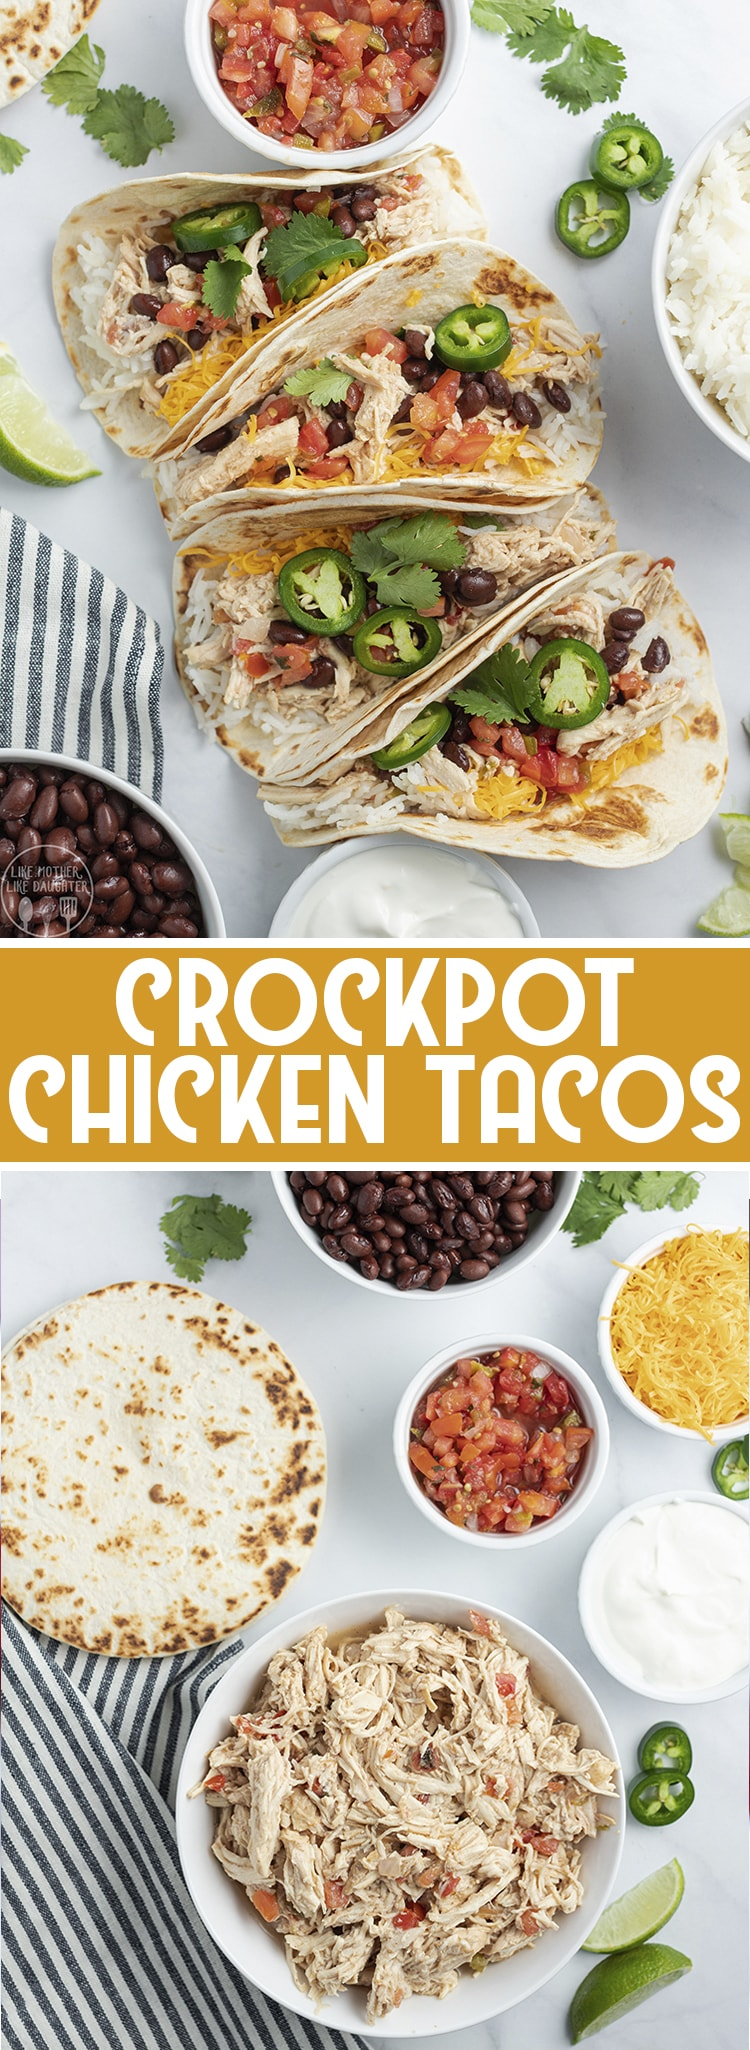 Crockpot chicken tacos are such an easy and delicious to way to cook up chicken, with only a few ingredients in the slow cooker, for tender, flavorful chicken that is perfect for tacos, burritos, nachos, and more.